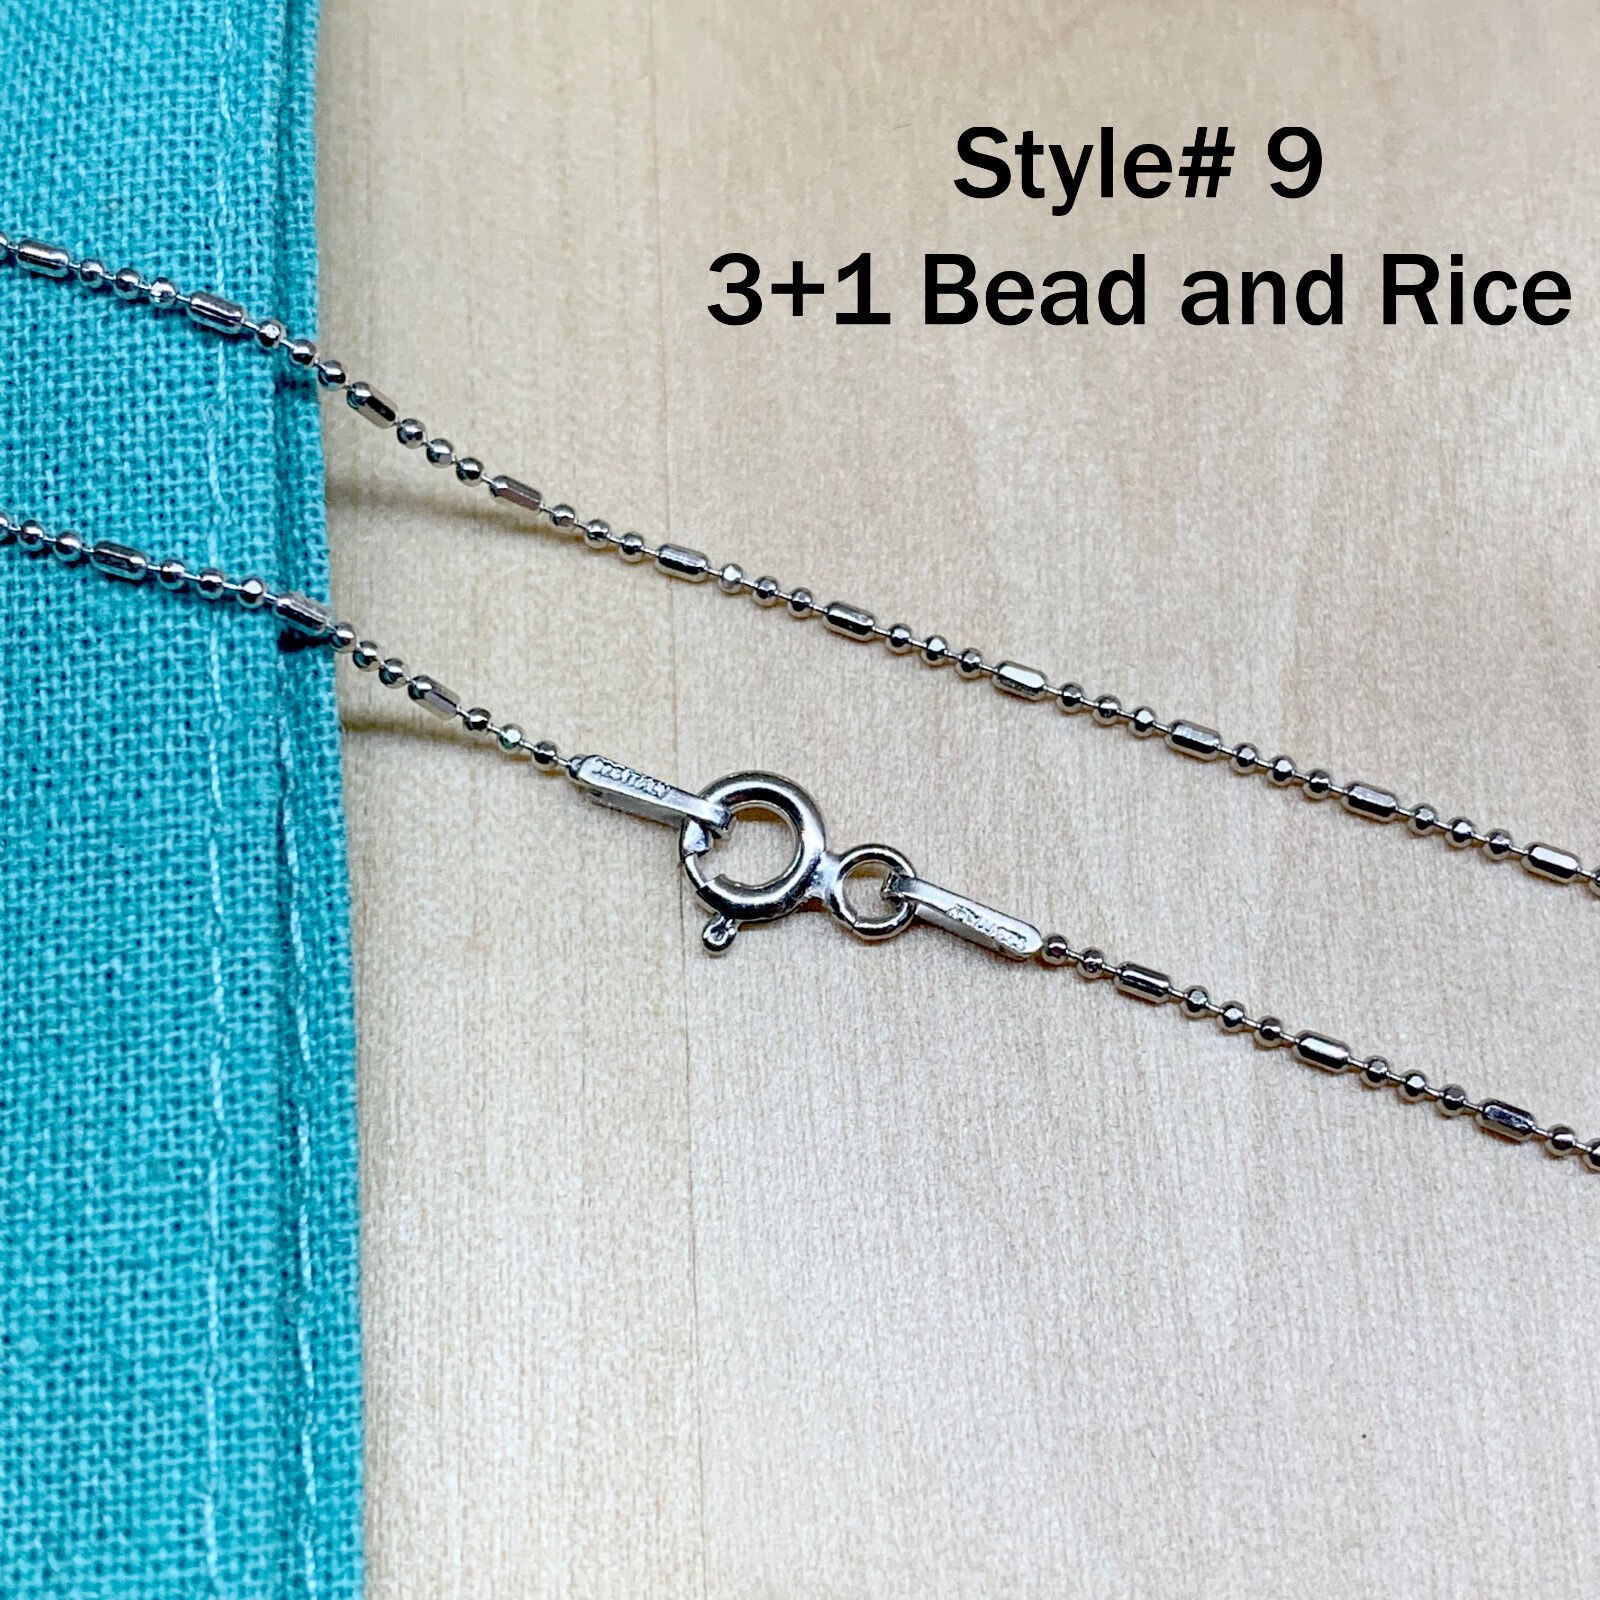 9 - Bead and Rice 3+1